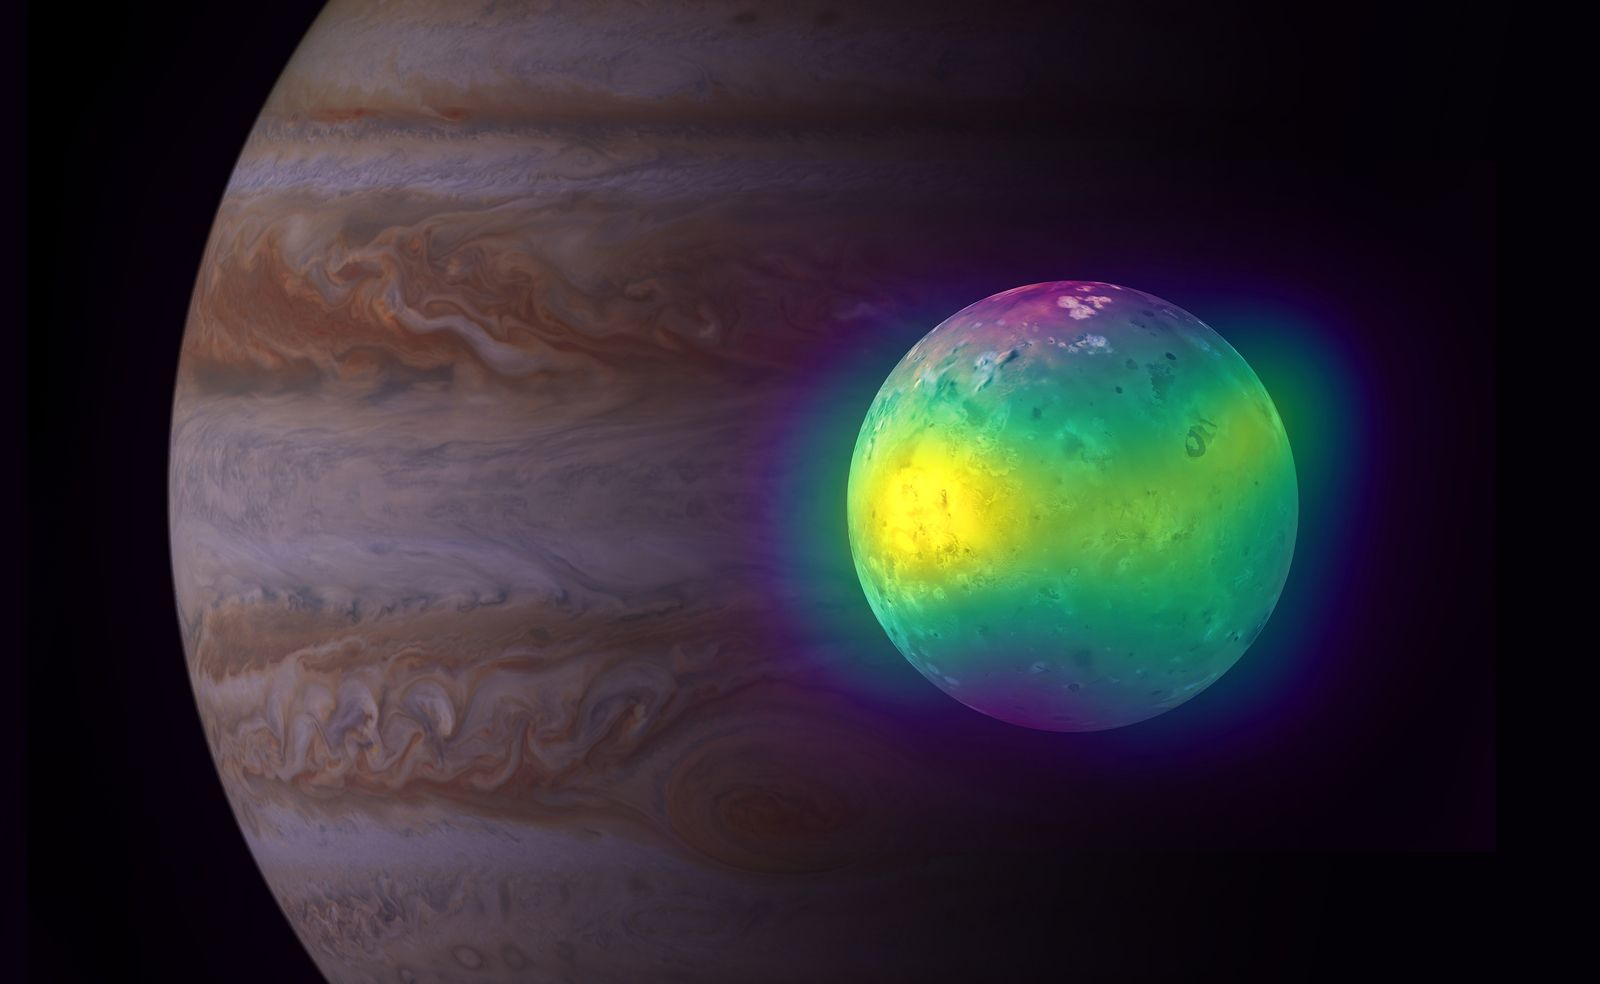 Composite image showing Jupiter's moon Io in radio (ALMA) and optical light (Voyager 1 and Galileo). ALMA images of Io show for the first time plumes of sulfur dioxide (in yellow) rising from its volcanoes. Jupiter is visible in the background (Cassini image). Credit: ALMA (ESO / NAOJ / NRAO), I. de Pater et al .; NRAO / AUI NSF, S. Dagnello; NASA / JPL / Institute for Space Sciences - one click to enlarge